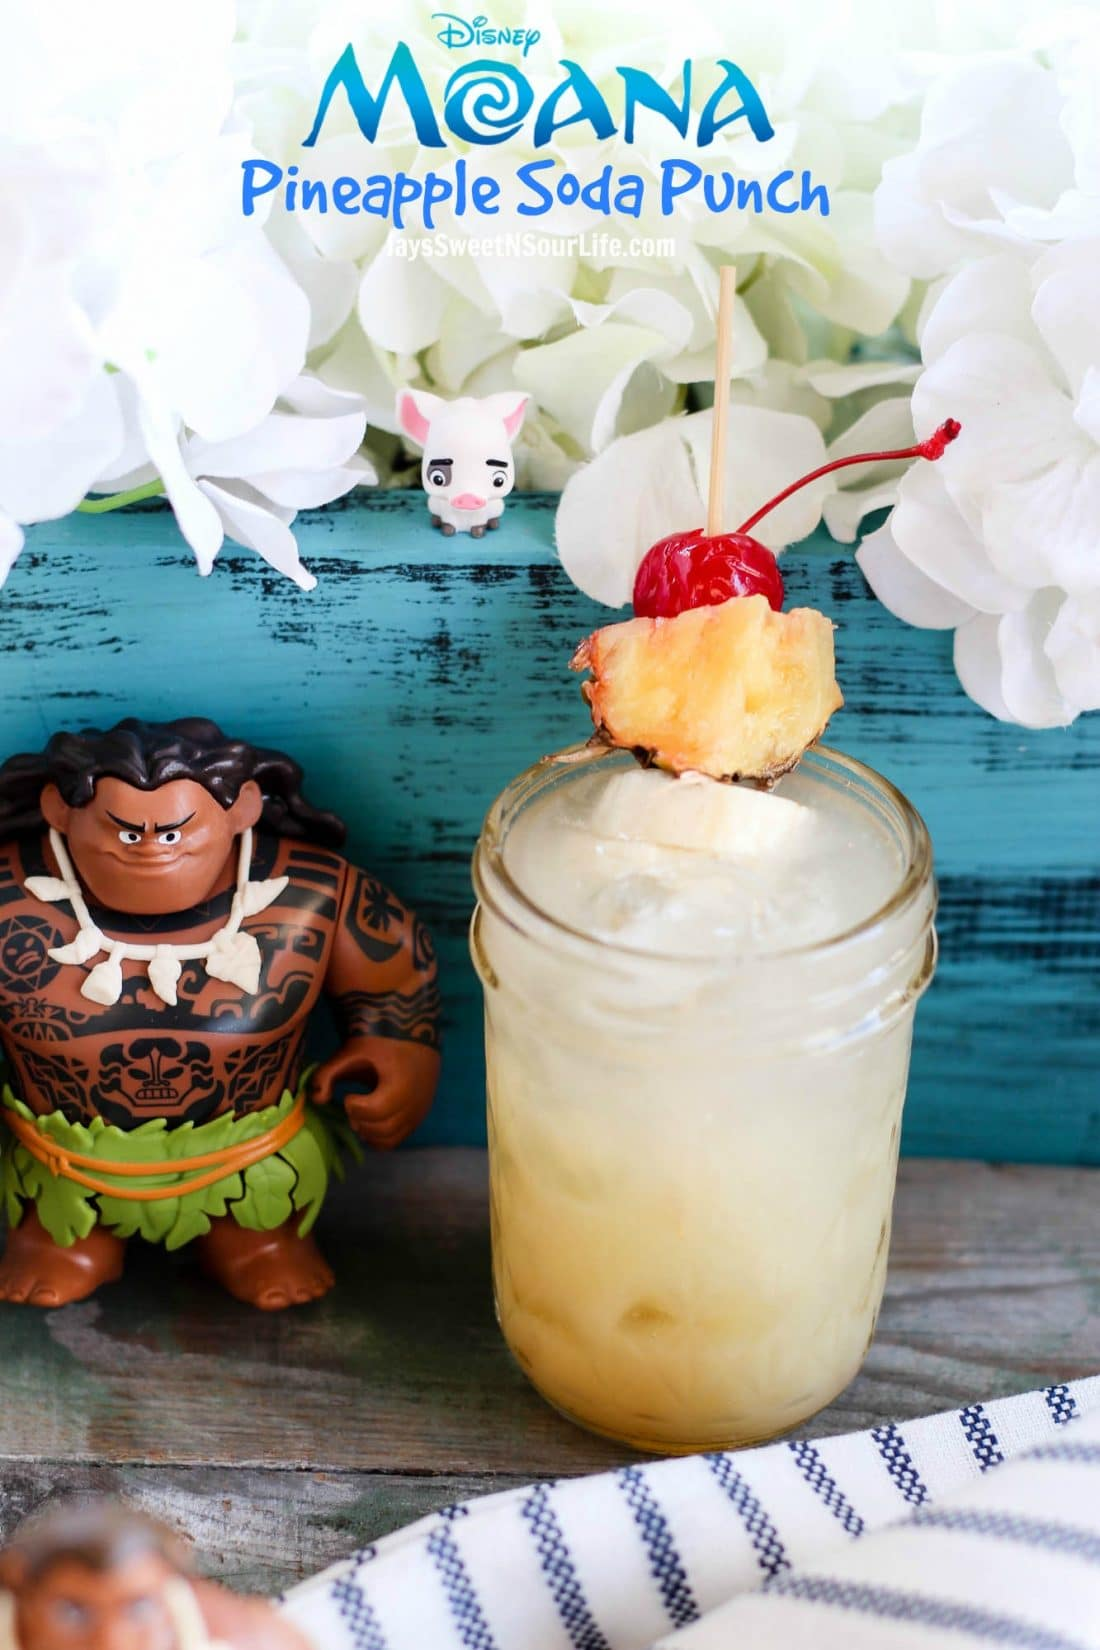 moana-pineapple-soda-punch-pinterest-share-2